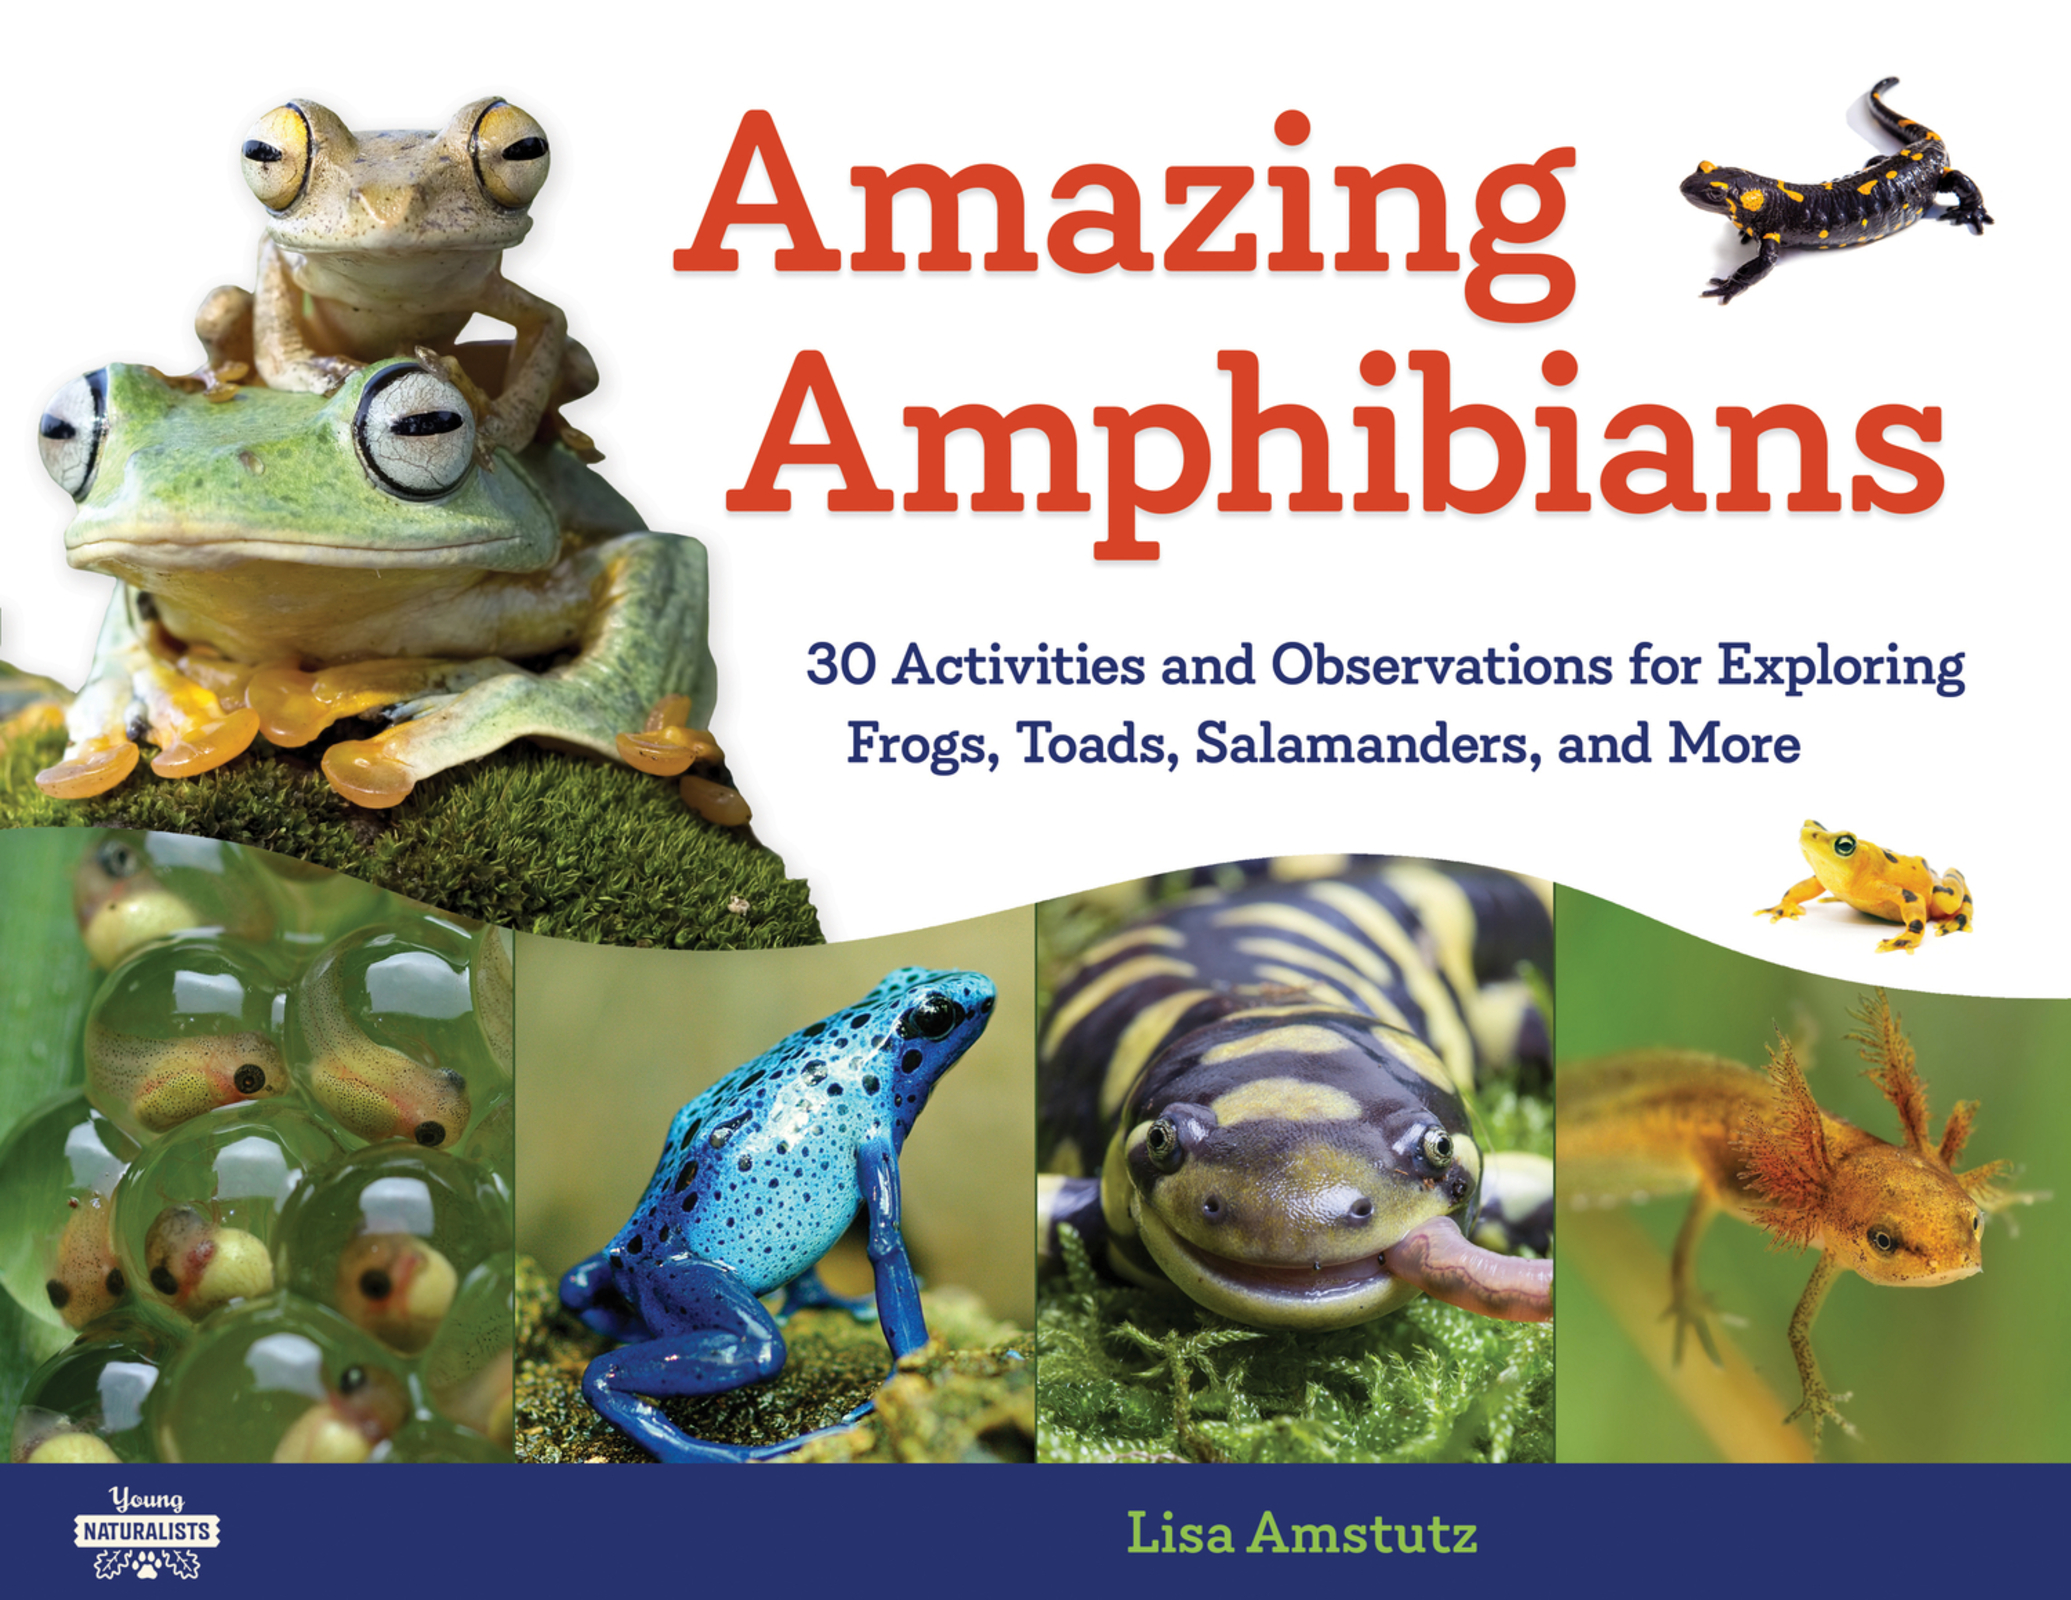 Amazing Amphibians 30 Activities and Observations for Exploring Frogs, Toads, Salamanders, and More